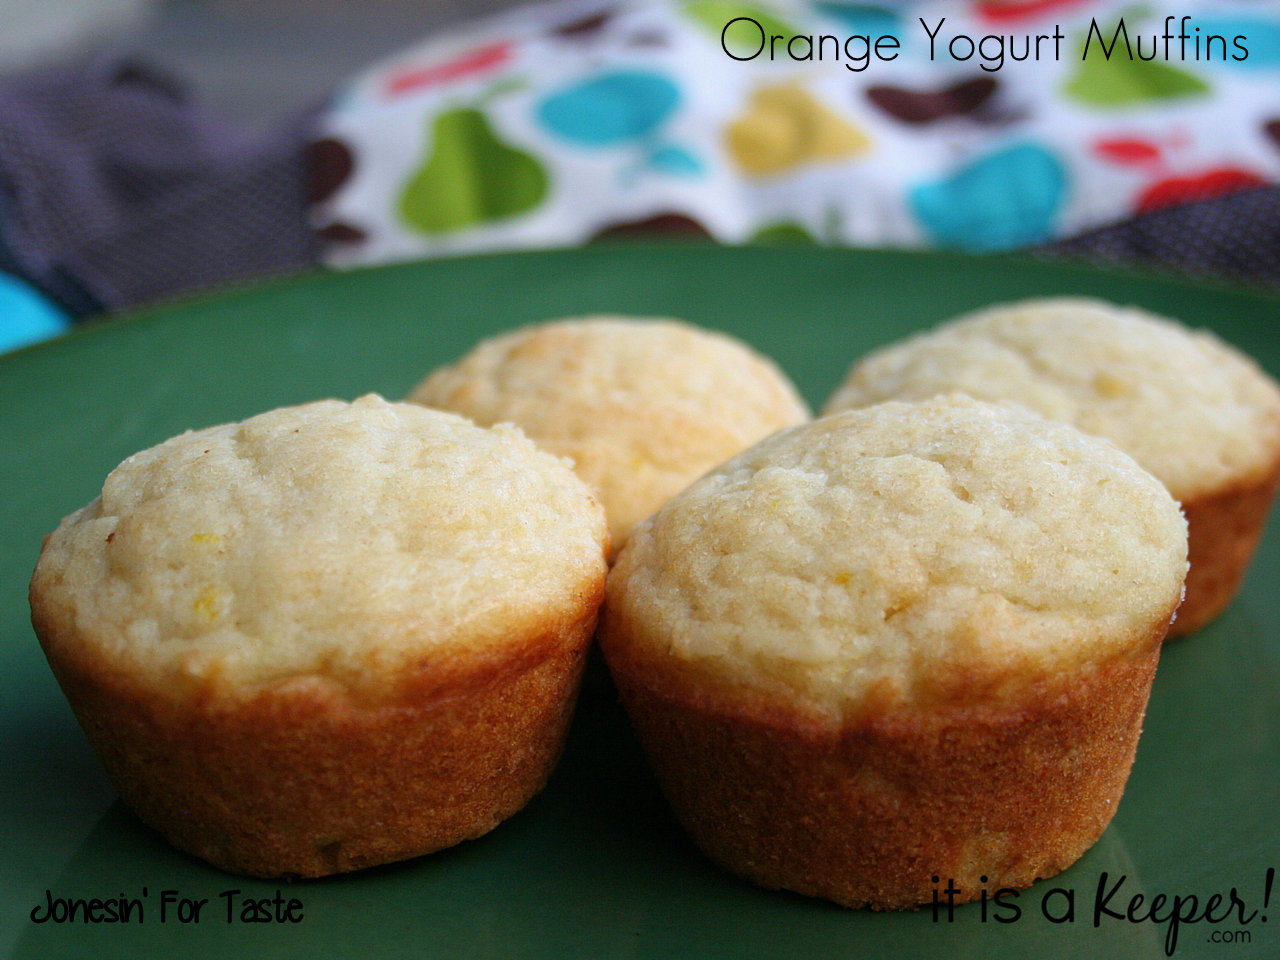 Tangy Orange Yogurt Muffins are an easy breakfast recipe that's ready in 30 minutes.